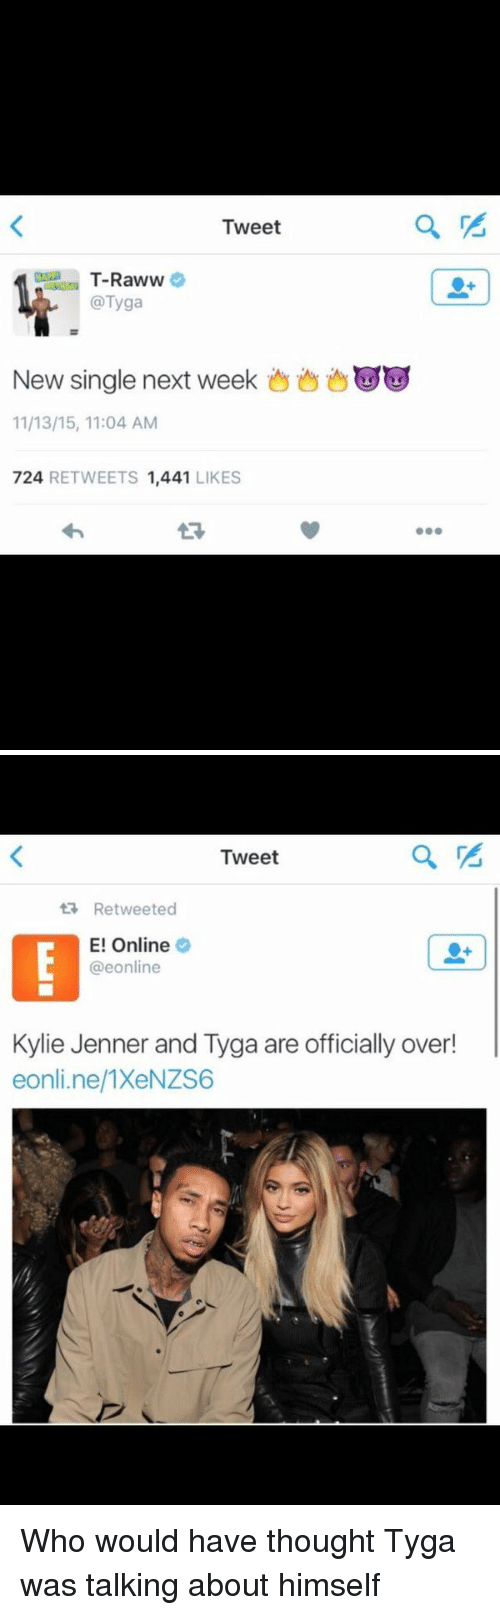 E Online: Tweet  T-Raww  @Tyga  New single next week  11/13/15, 11:04 AM  724,  RETWEETS  1,441  LIKES   Tweet  Retweeted  E! Online  @eonline  Kylie Jenner and Tyga are officially over!  eonline 1XeNZS6 Who would have thought Tyga was talking about himself